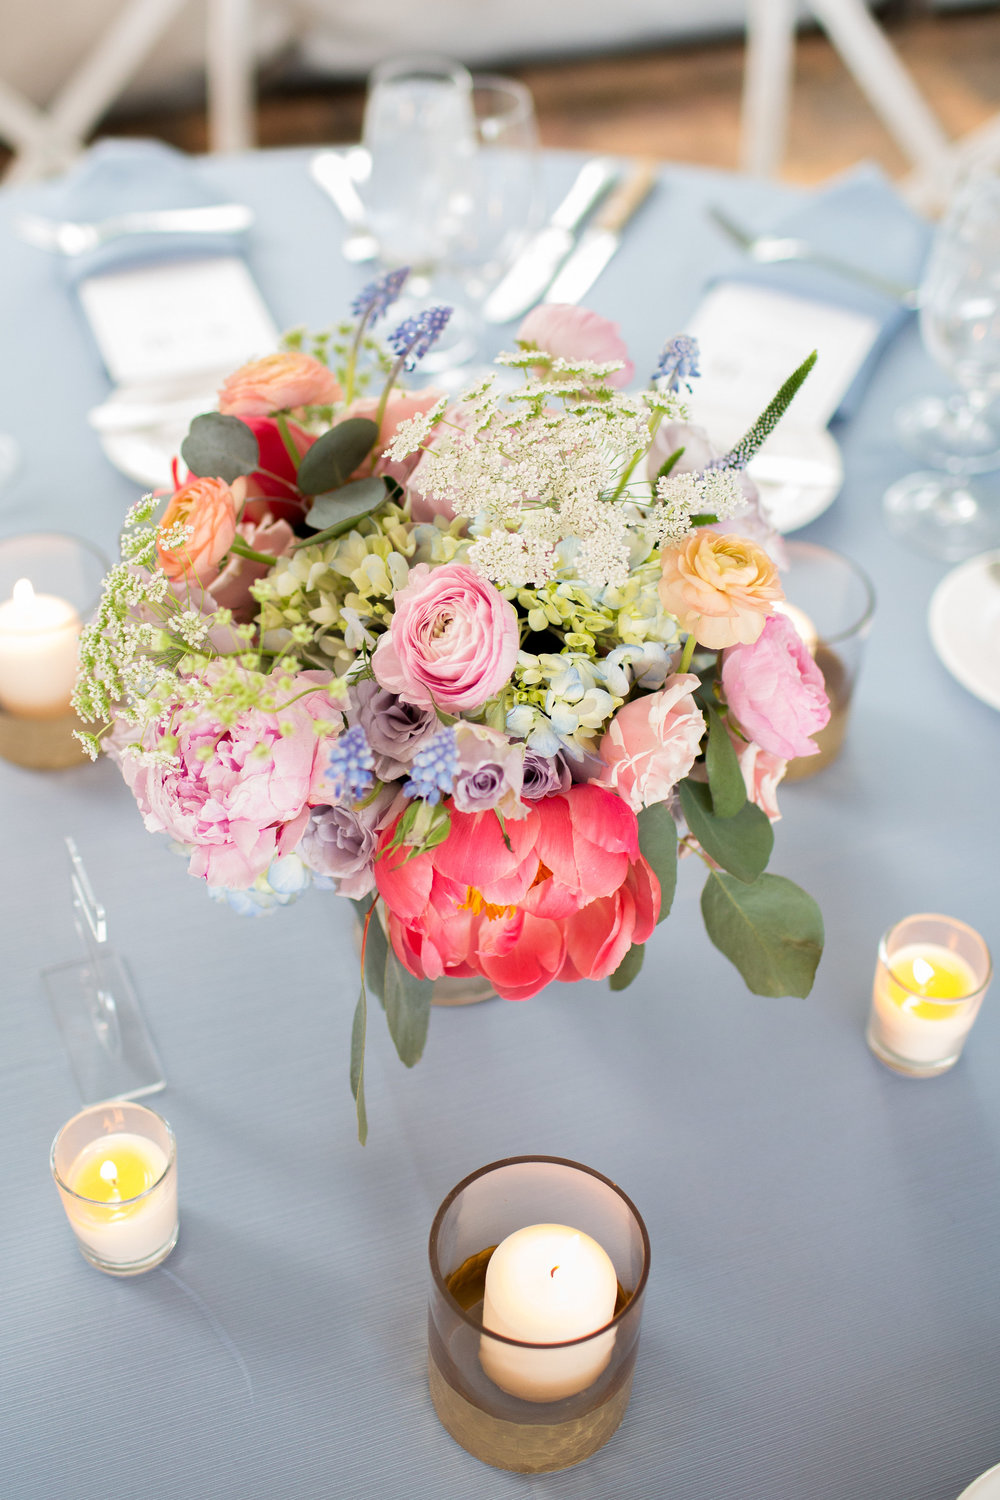 Flowers by Fleur, Photo by Annie Steele Photo, Planning by BCR Events at the Chicago Botanic Gardens.